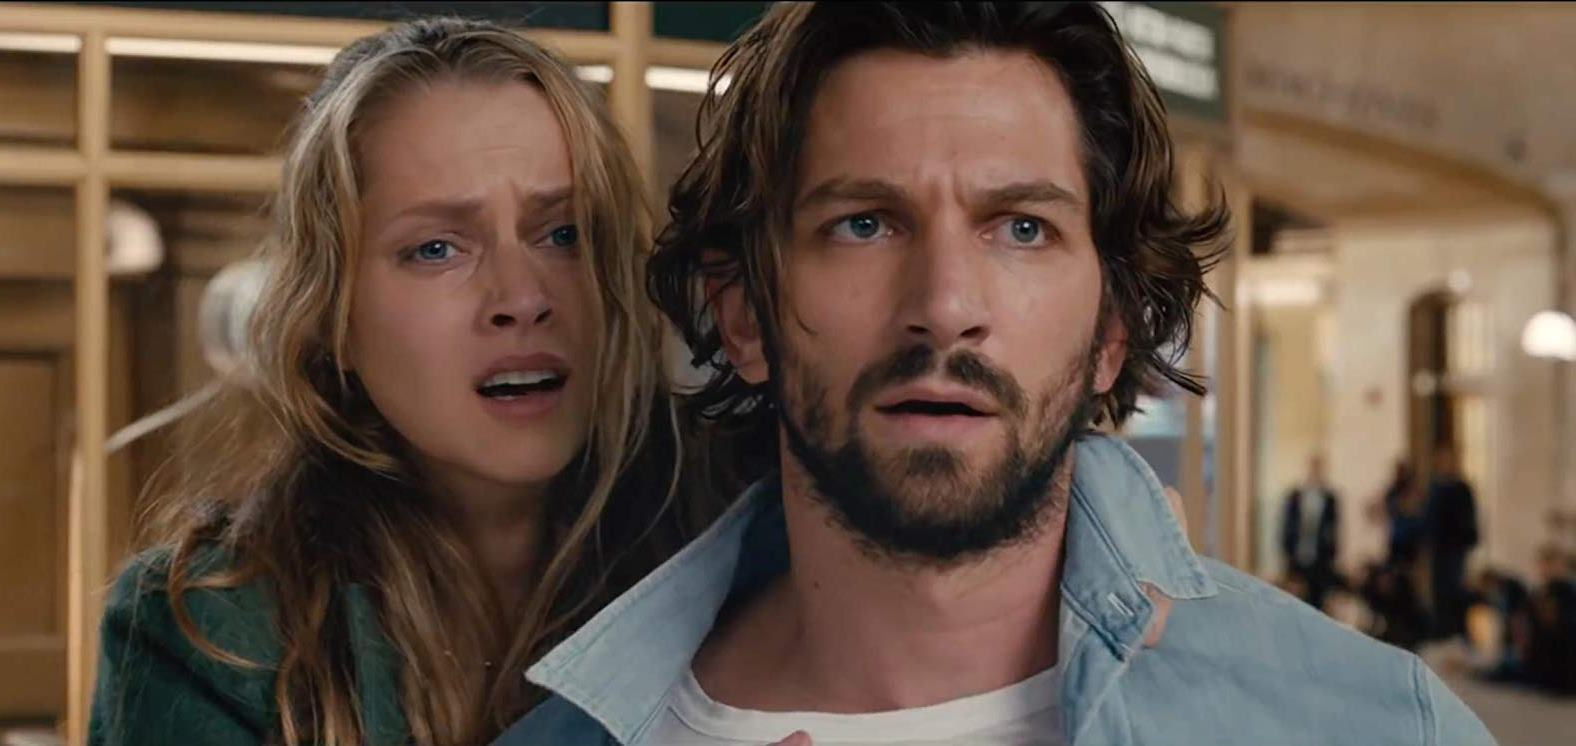 Teresa Palmer and Michiel Huisman finding themselves drawn into repeating past events in 2:22 (2017)